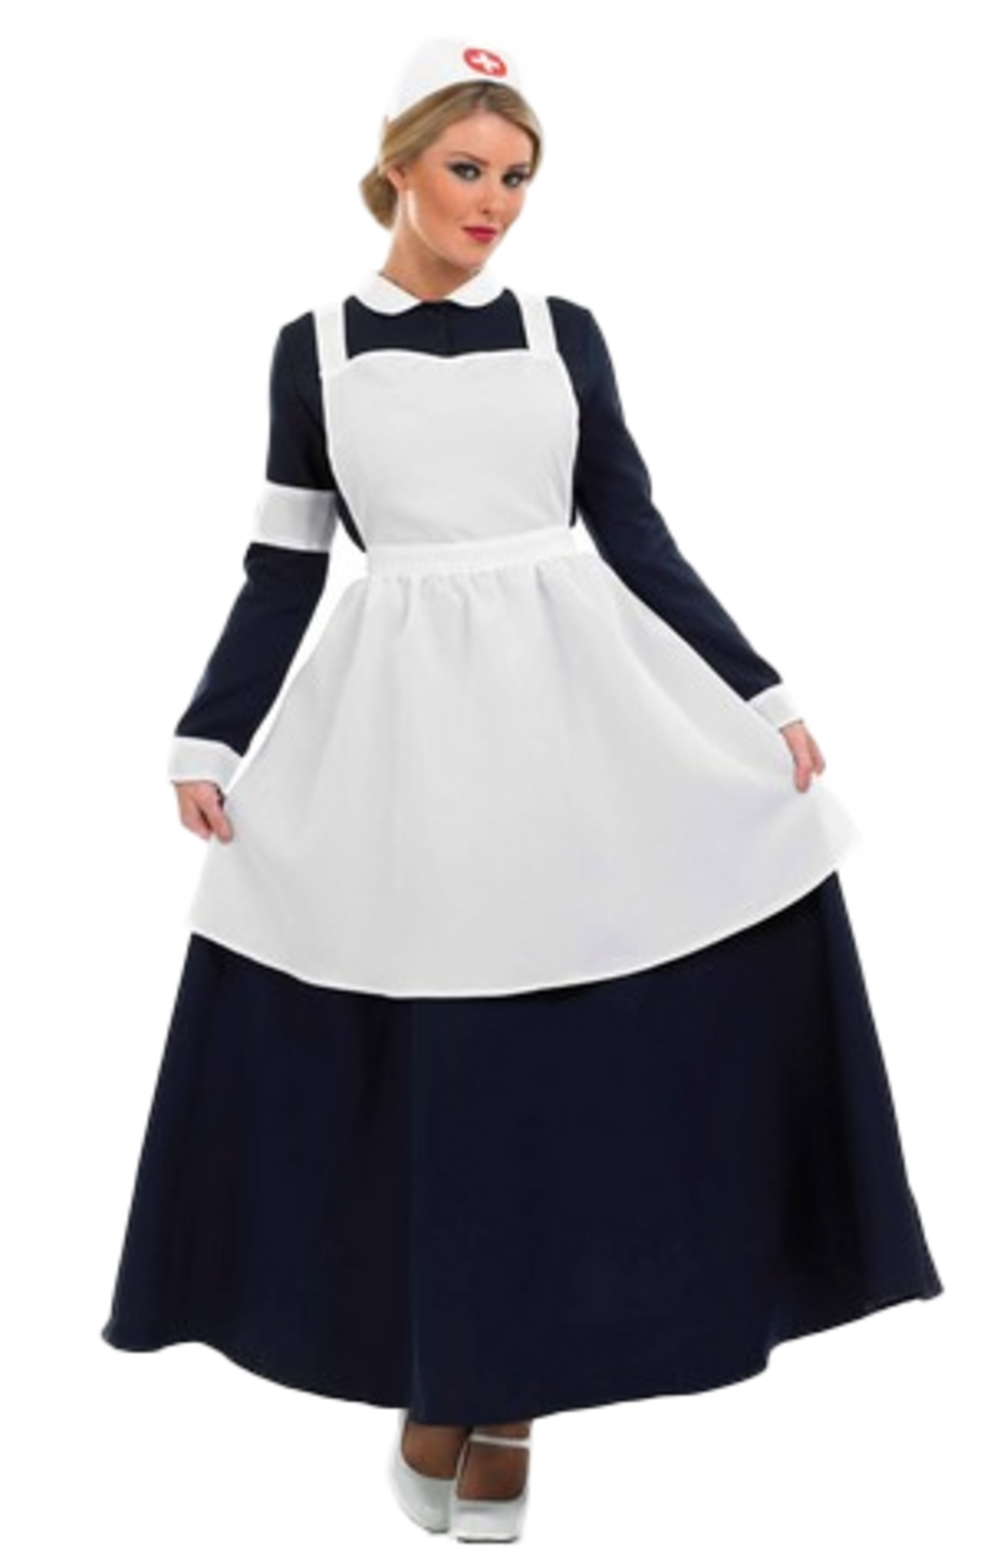 Doctors nurses costumes mega fancy dress victorian nurse costume solutioingenieria Gallery